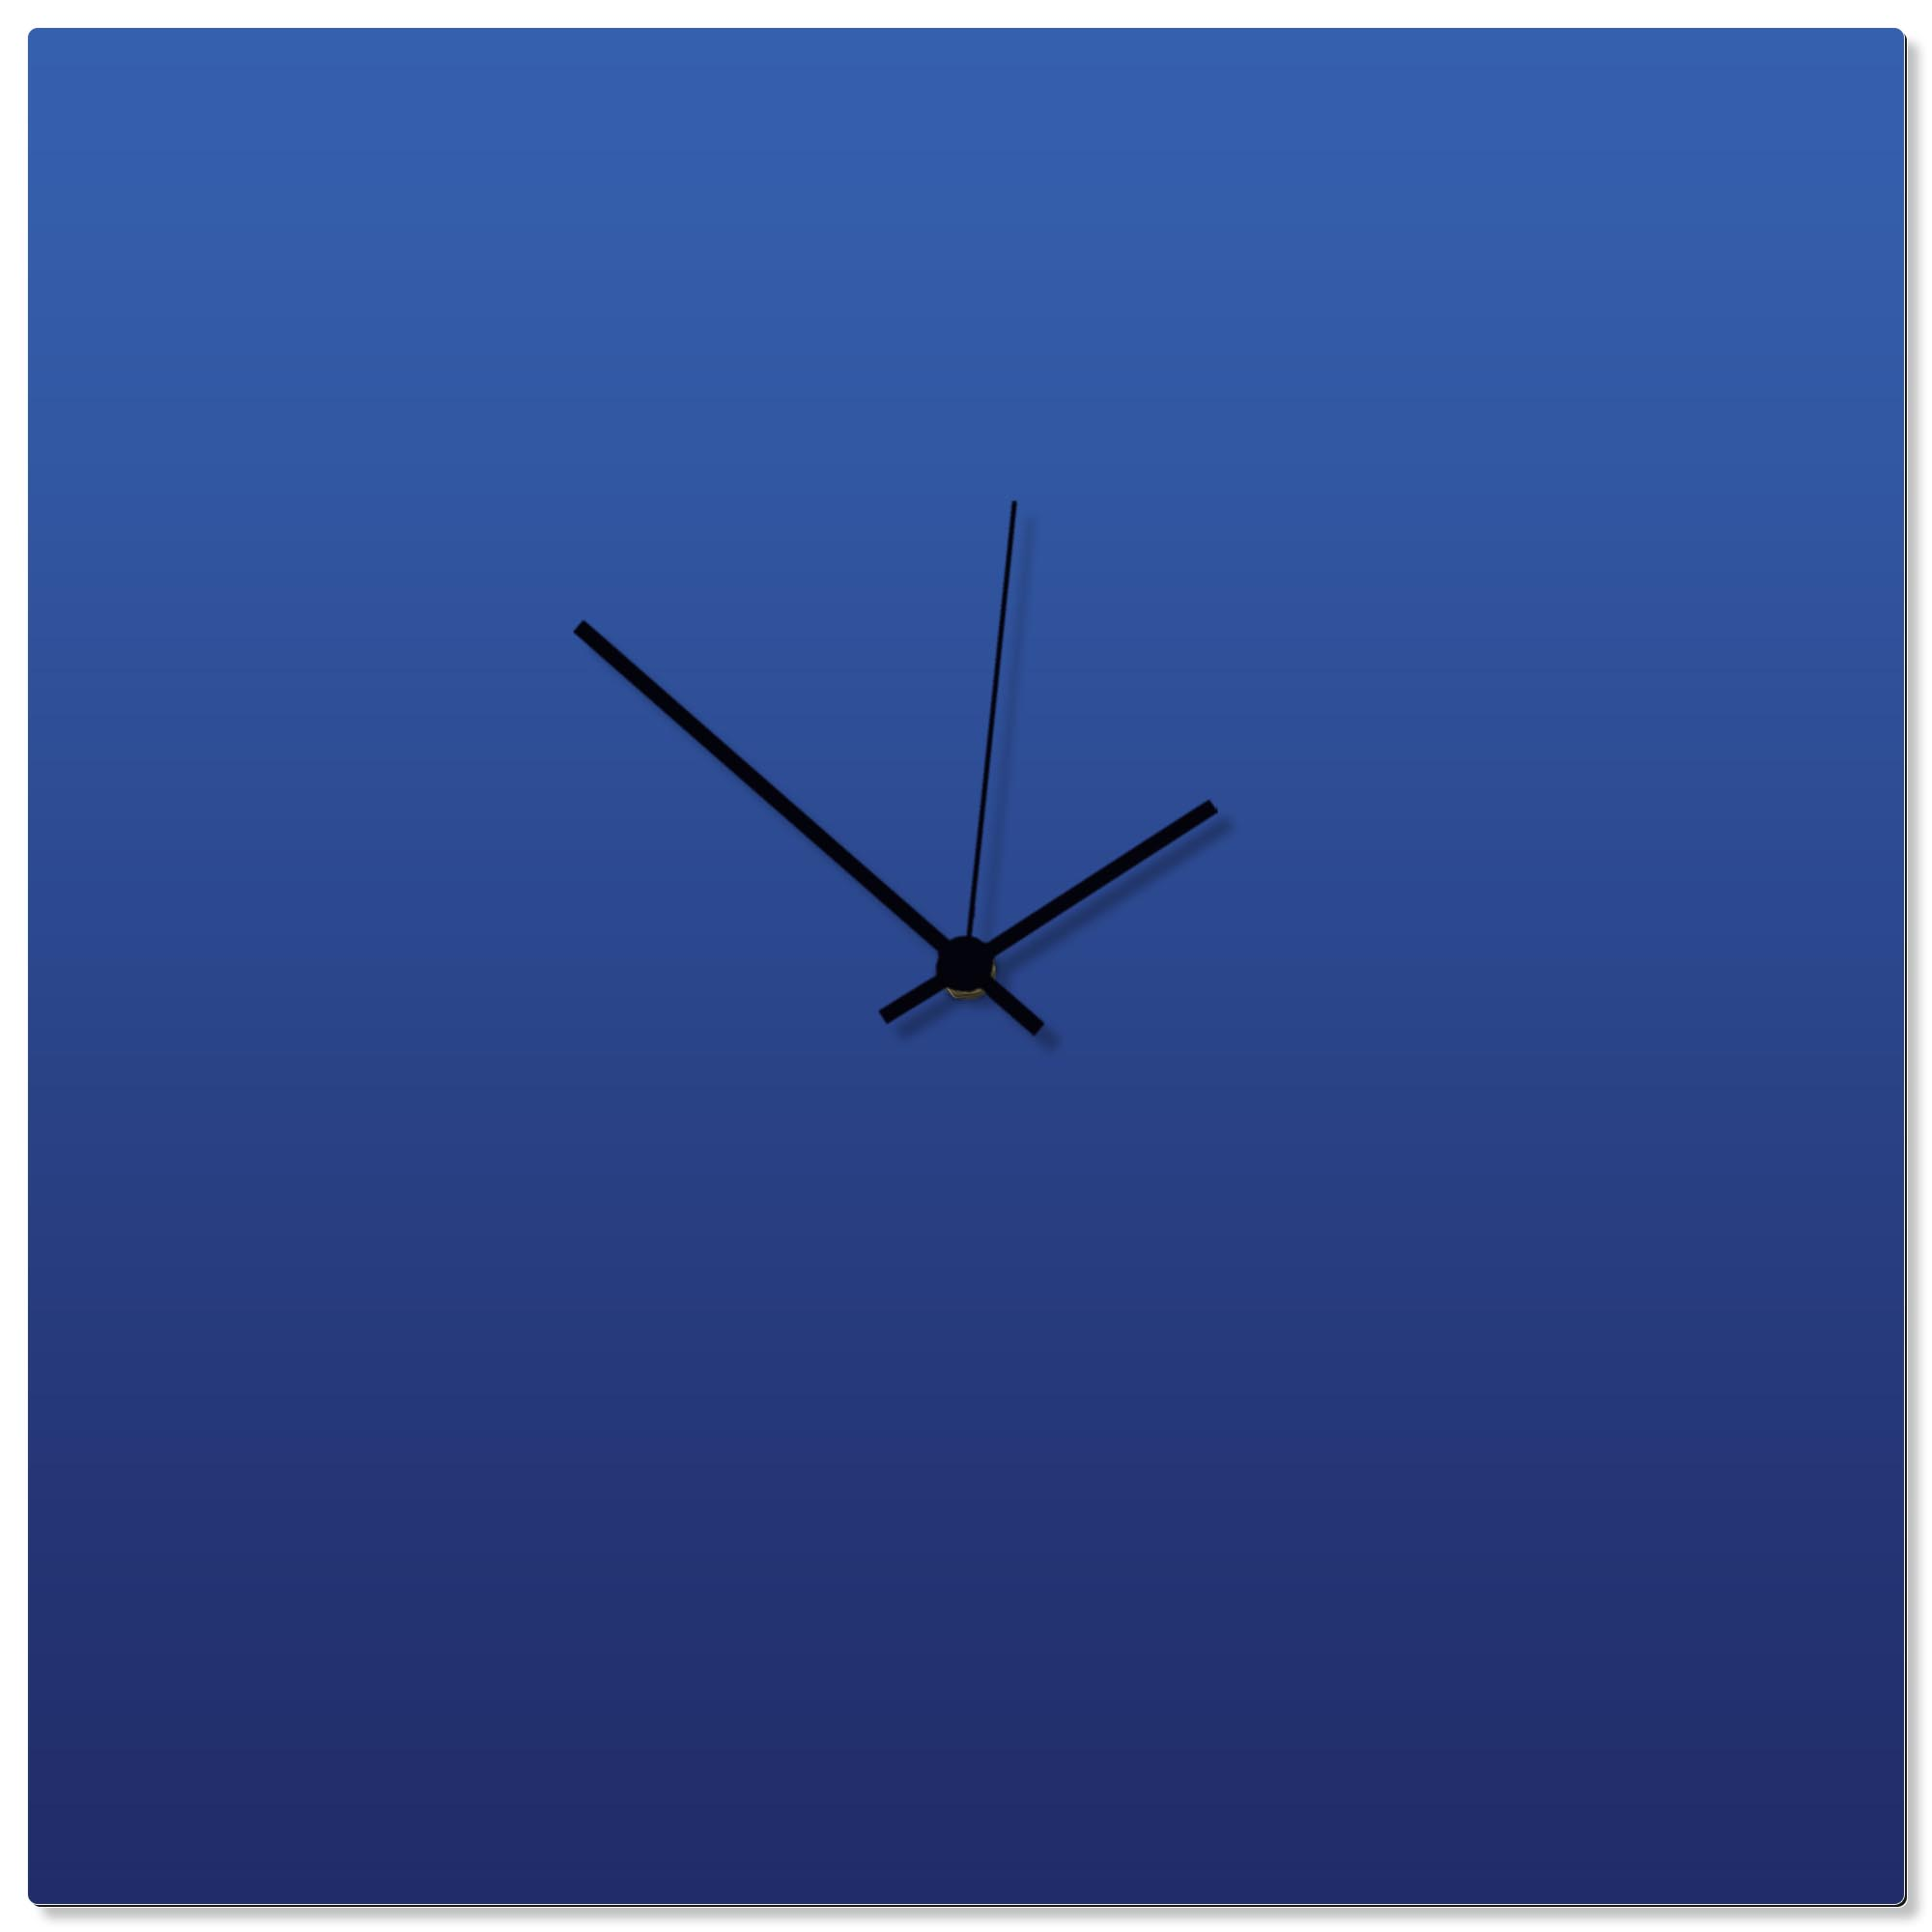 Blueout Black Square Clock Large 23x23in. Aluminum Polymetal